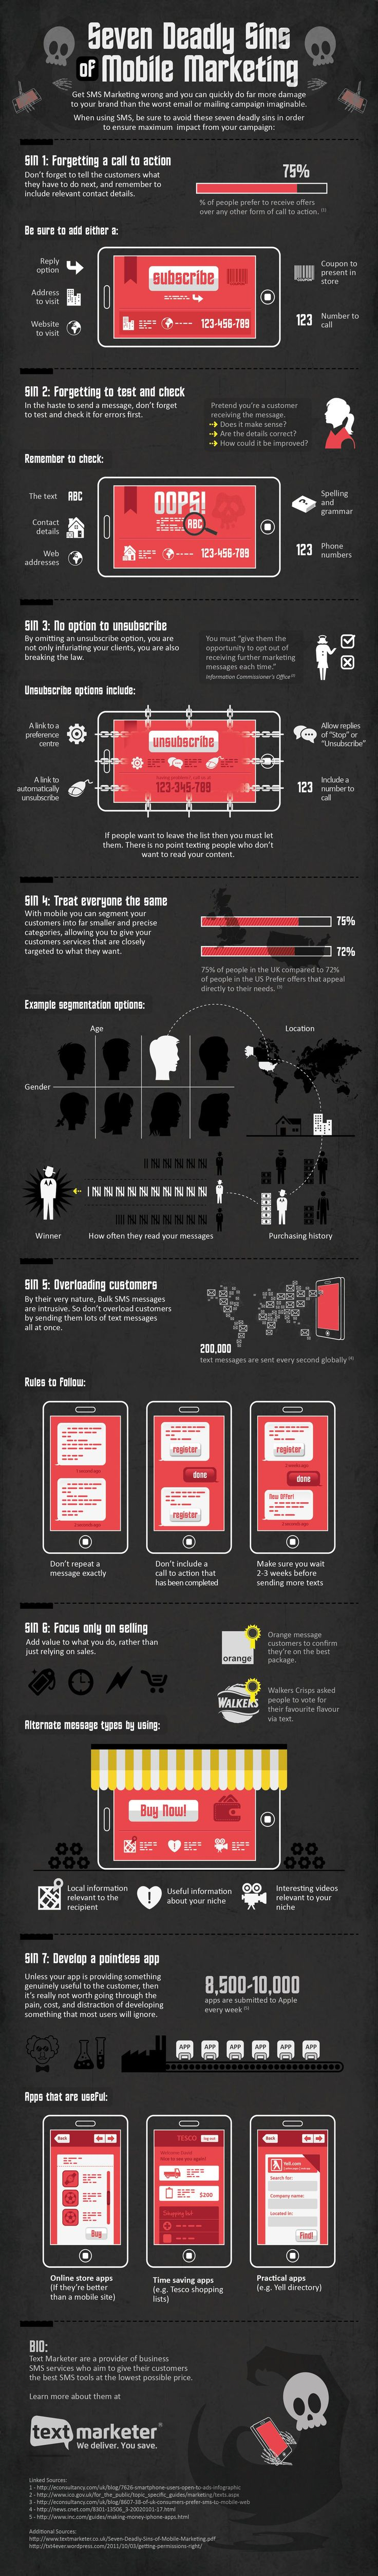 7 Sins of Mobile Marketing! Avoid these if you want to reach the top ...